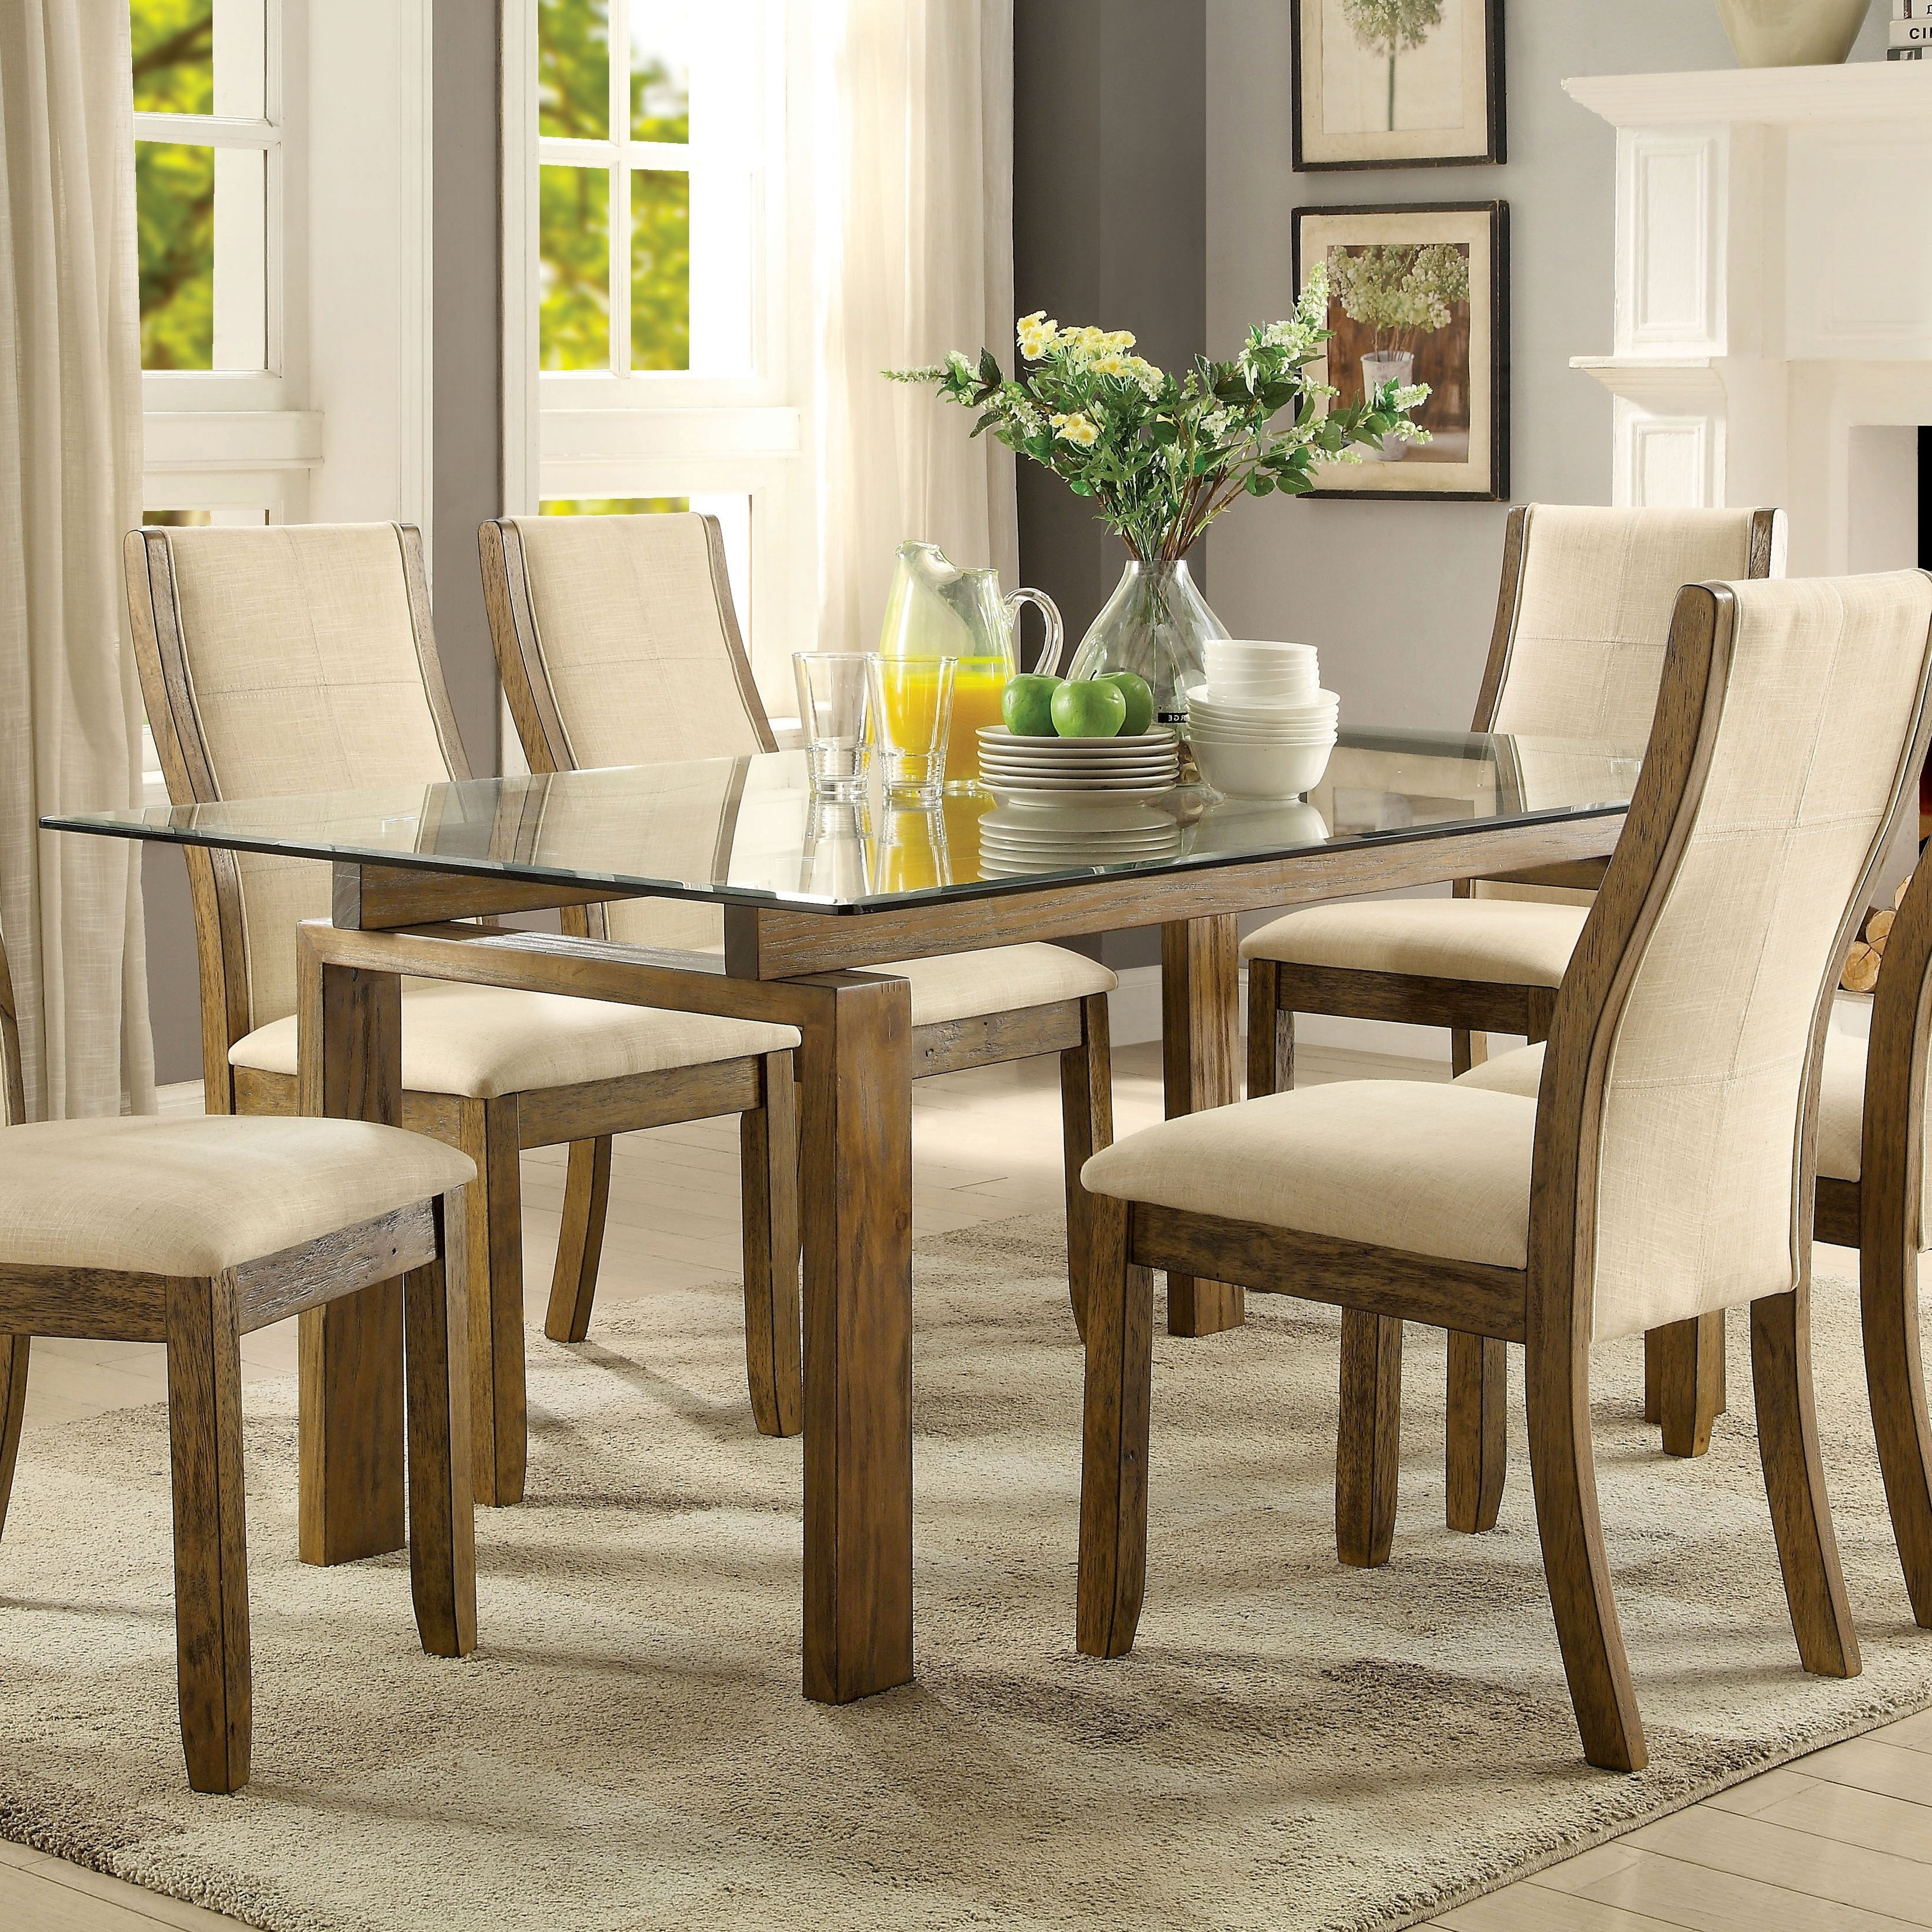 Glass Top Oak Dining Tables Throughout Best And Newest Shop Furniture Of America Lenea Contemporary Glass Top Oak Dining (Gallery 19 of 25)